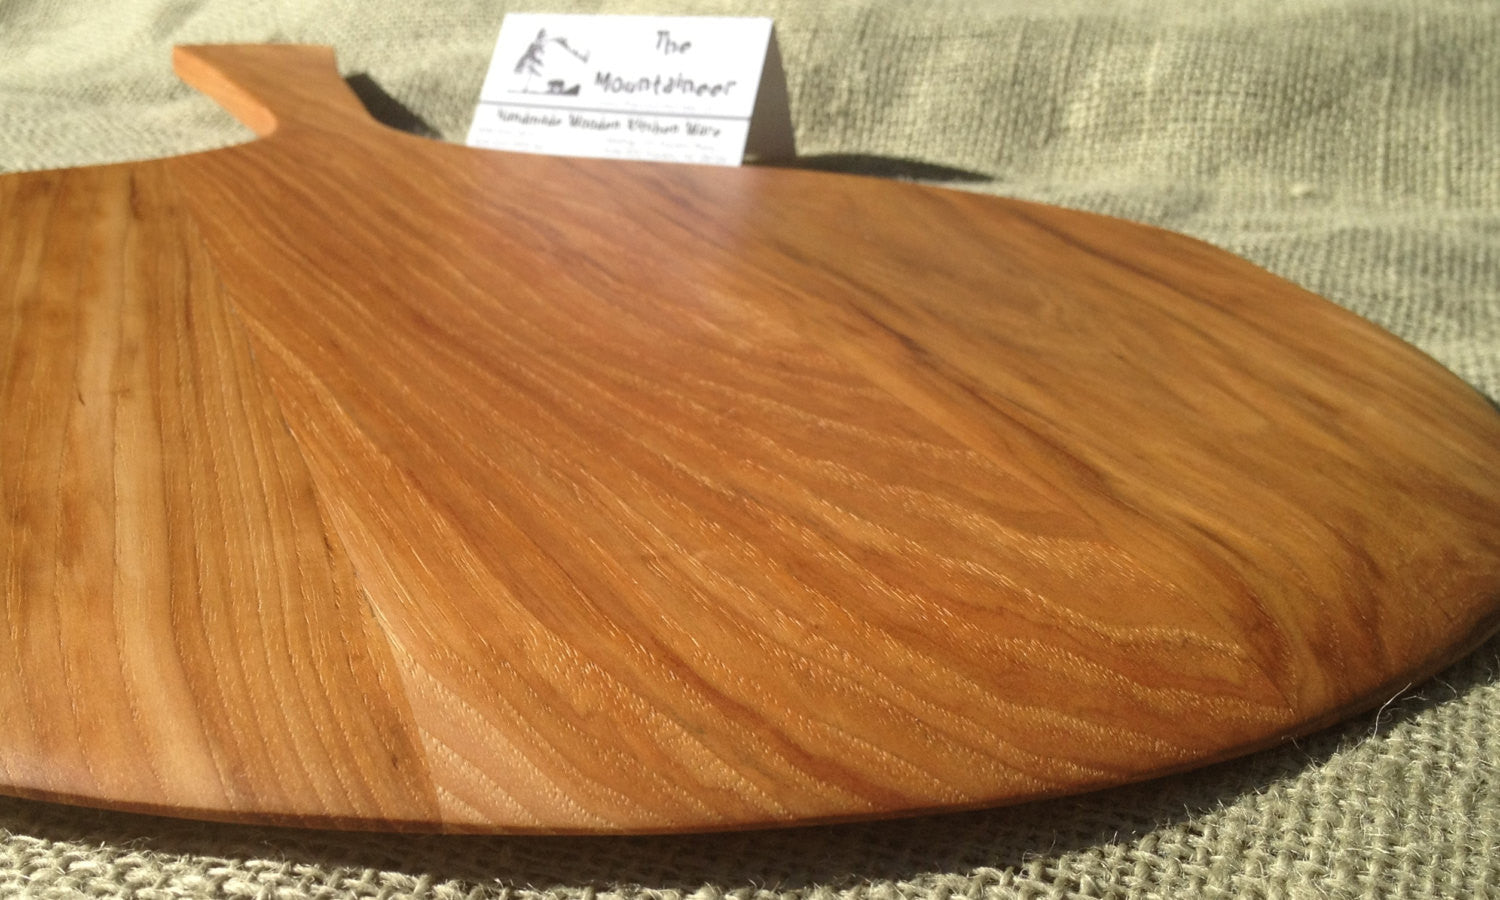 Pizza peel paddle BLACK WALNUT. 22 1/2 long, 14 across, 8 handle, 7/16 thick (inches).